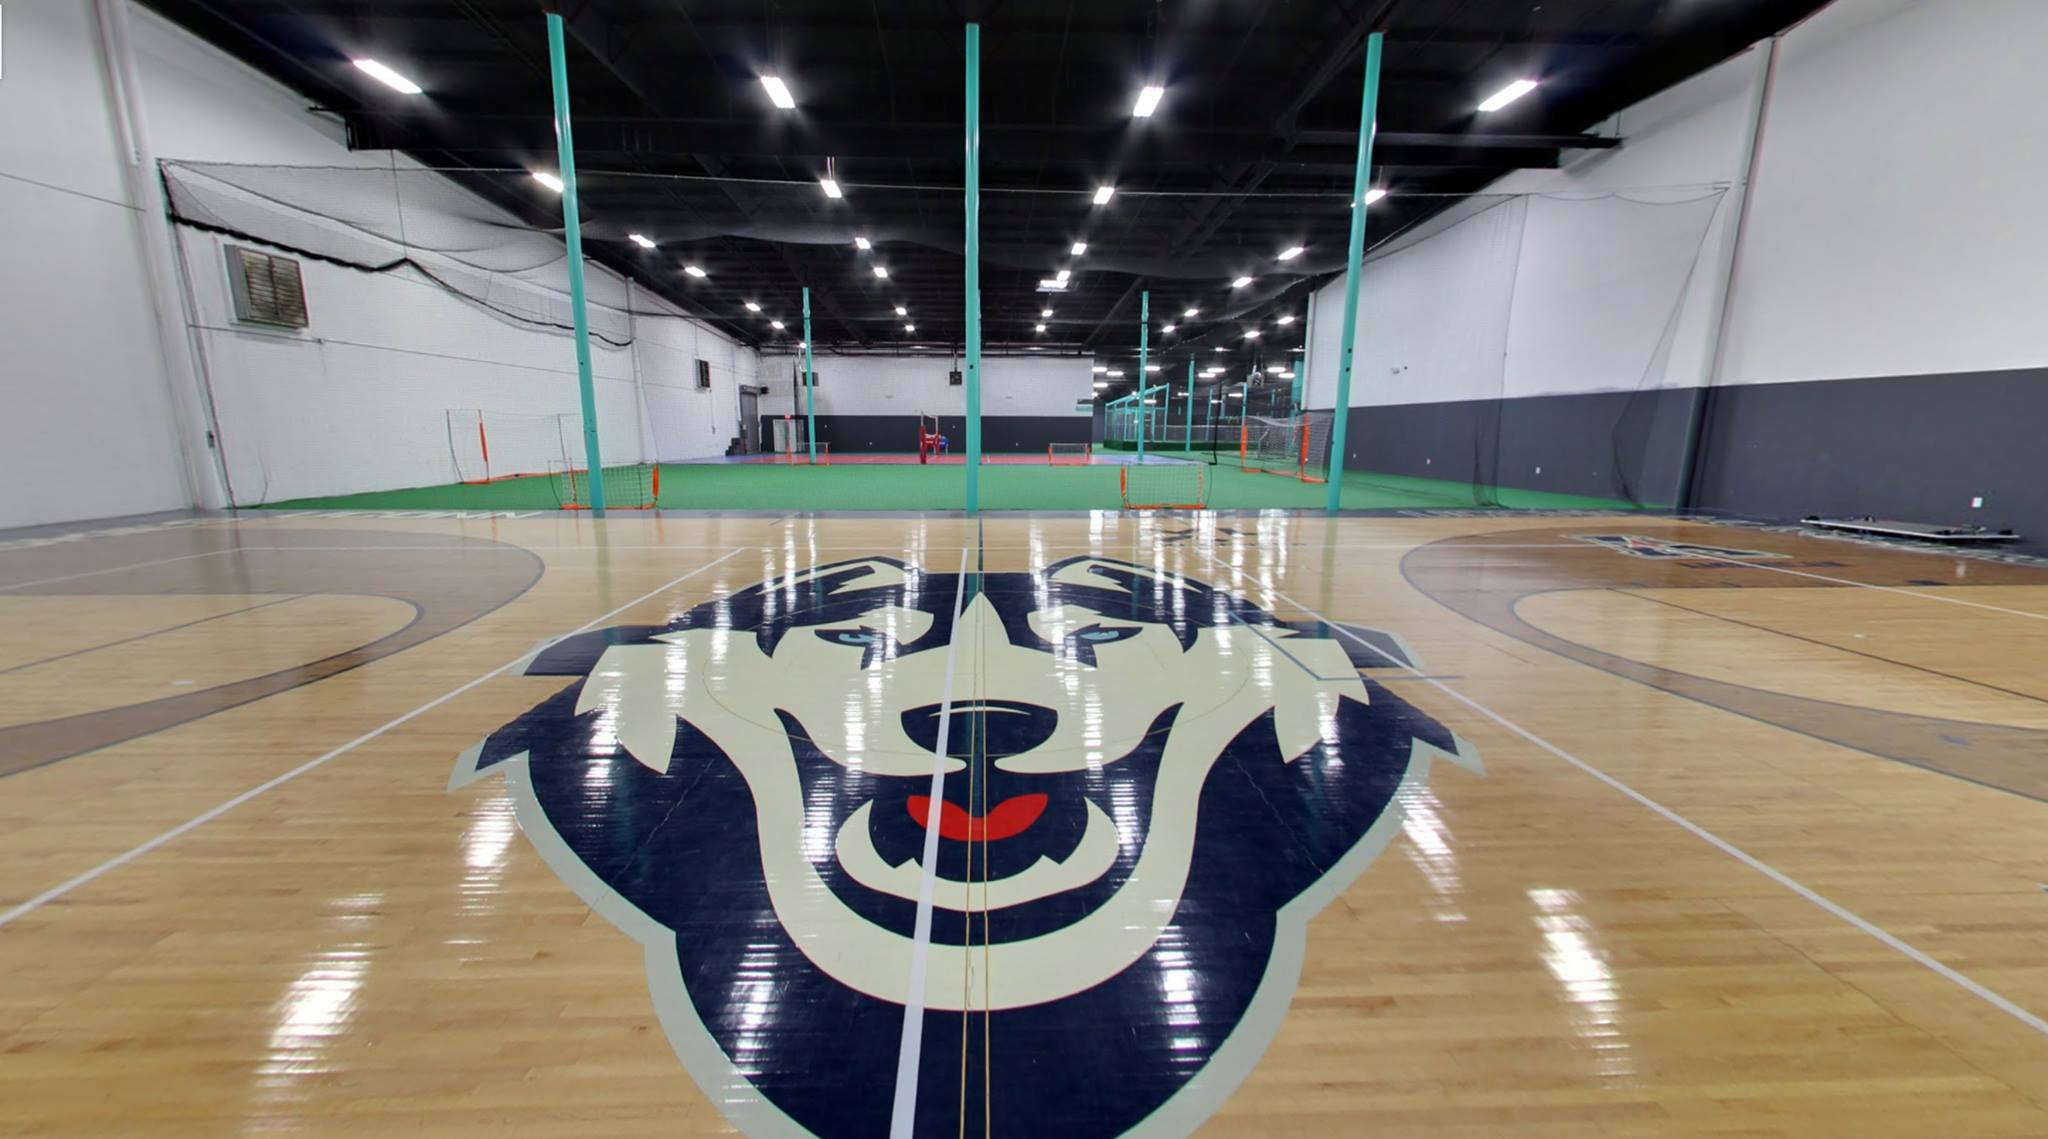 Basketball Court Rental in Clarksville TN